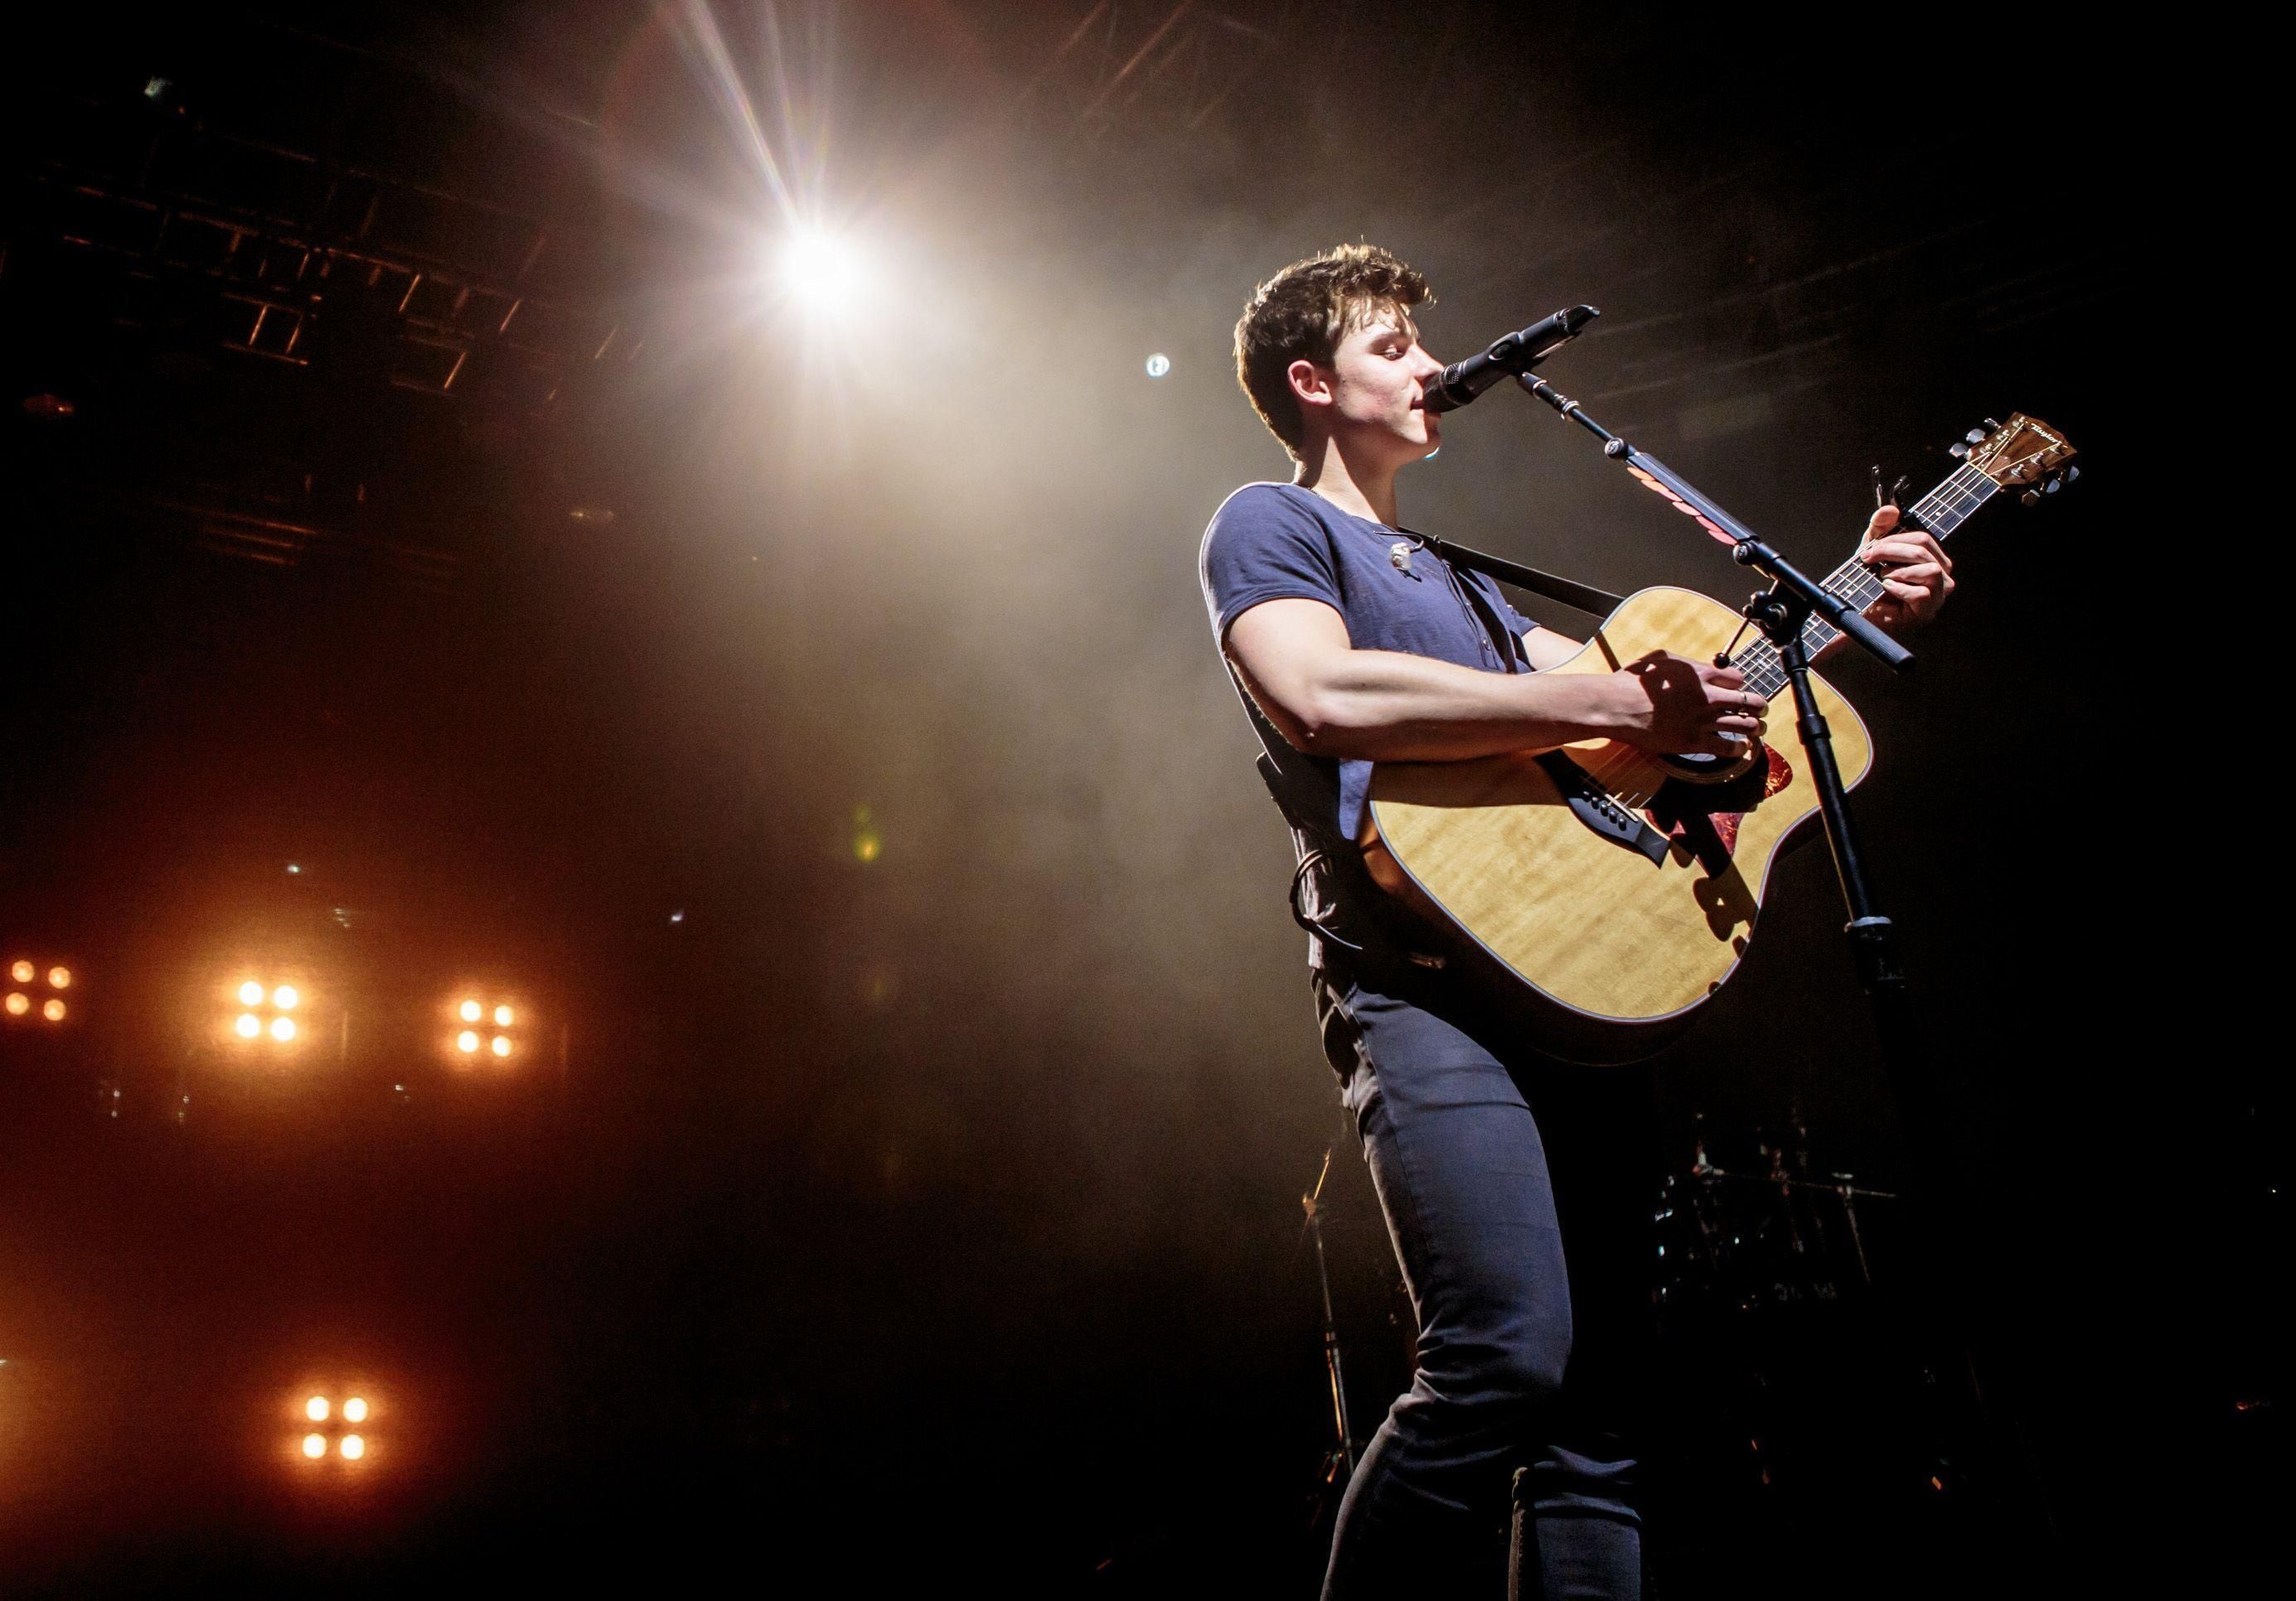 Shawn Mendes Wallpapers Wallpaper Cave Shawn Mendes Wallpaper Shawn Mendes Shawn